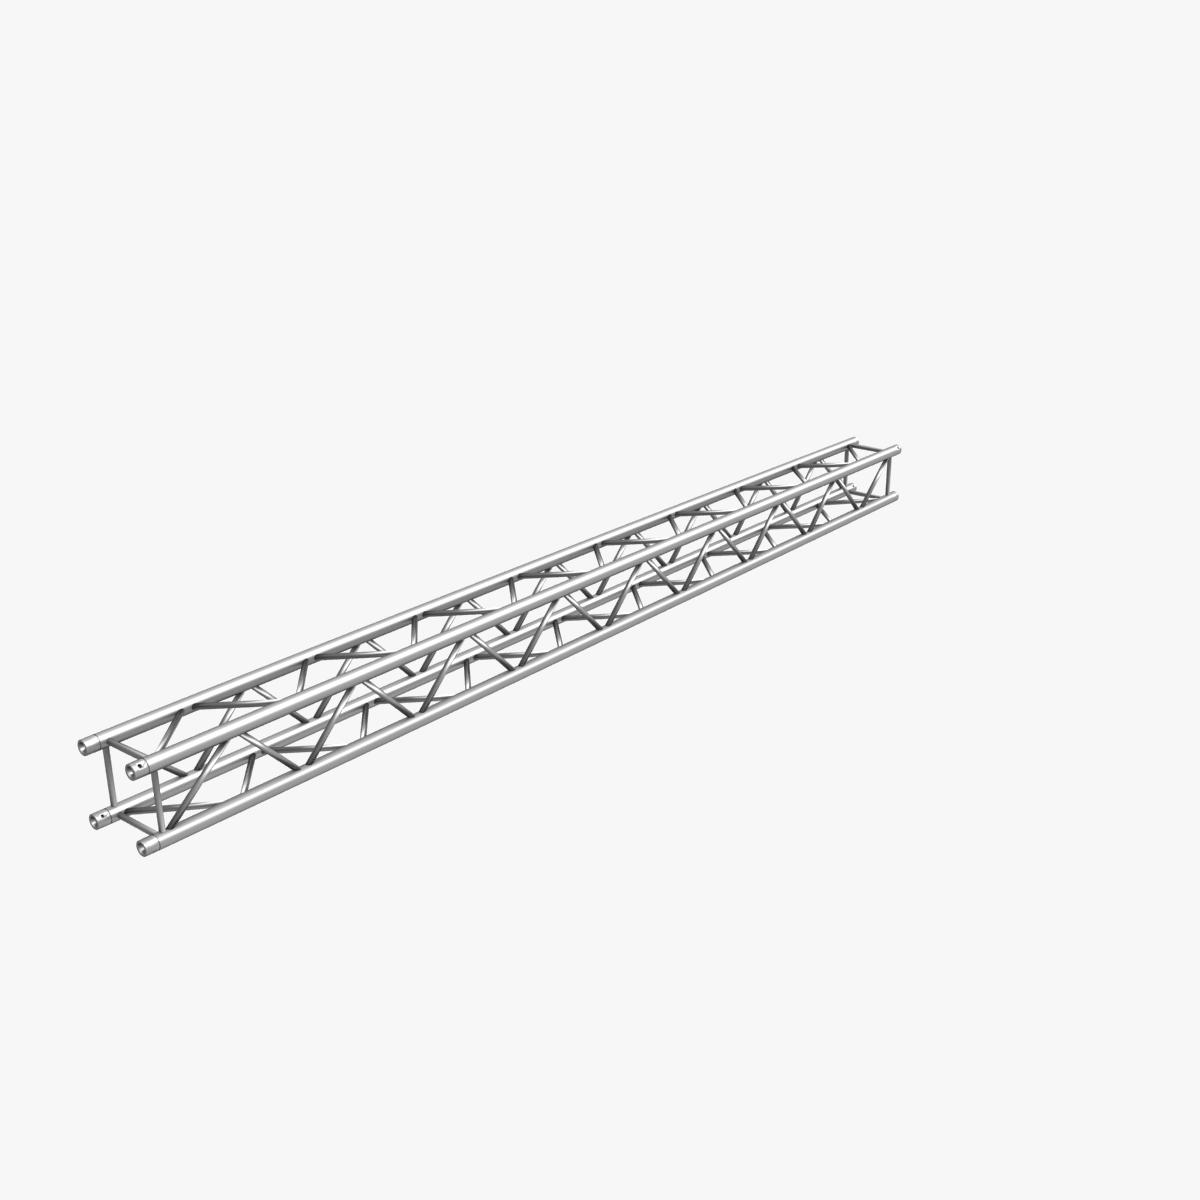 square truss standard (collection 24 modular) 3d model 3ds max dxf fbx c4d dae  texture obj 216339